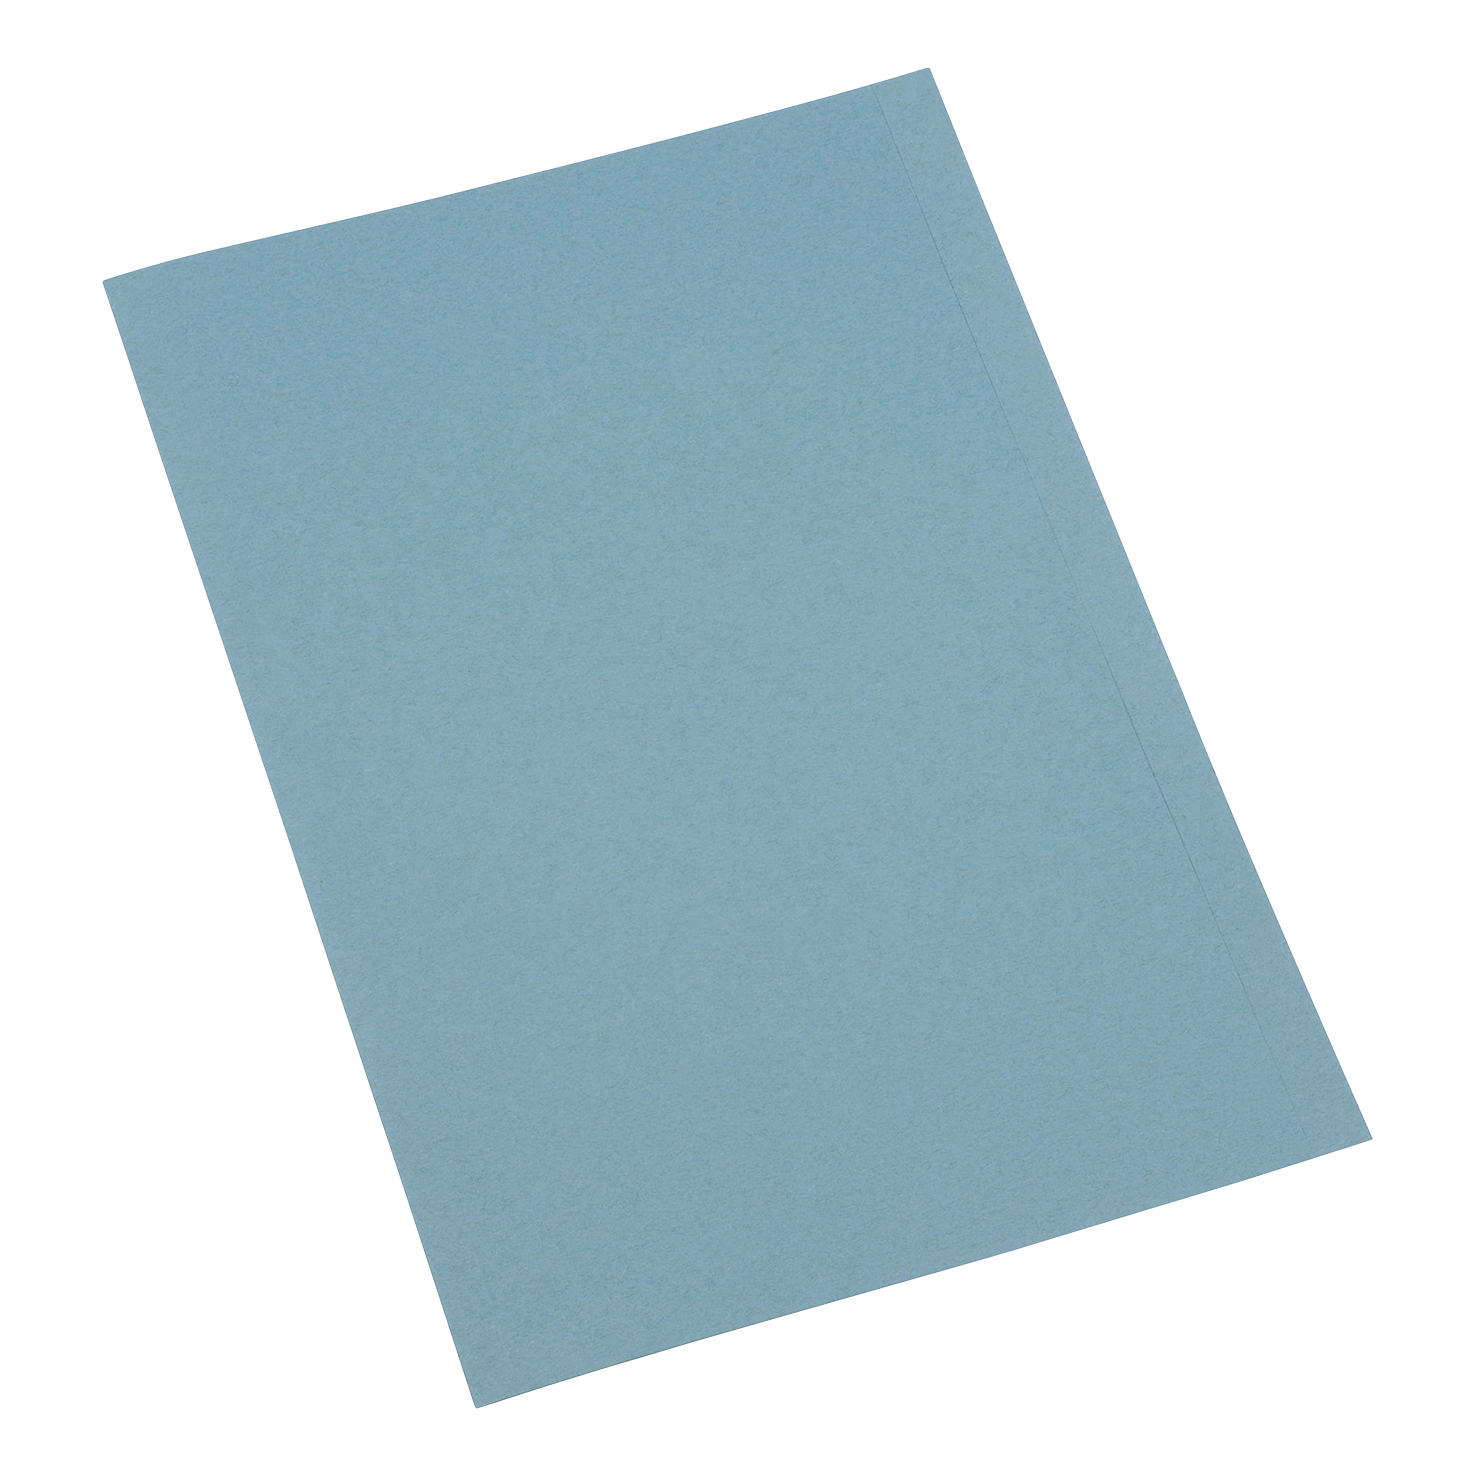 5 Star Office Square Cut Folder Recycled Pre-punched 250gsm A4 Blue [Pack 100]